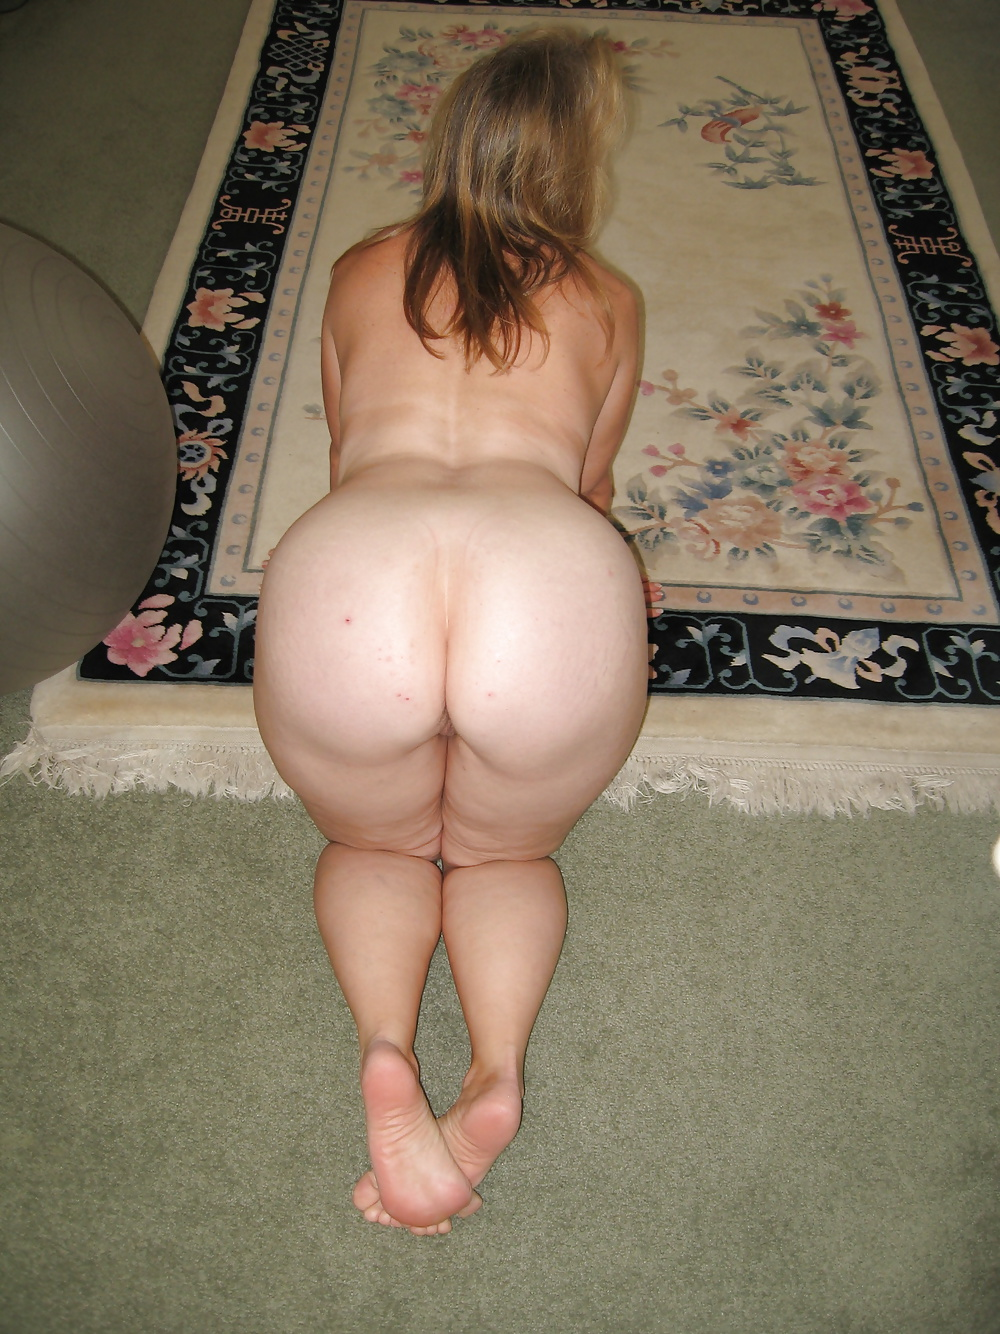 nude-white-big-booty-wifes-drunk-girl-bachelorette-party-stripper